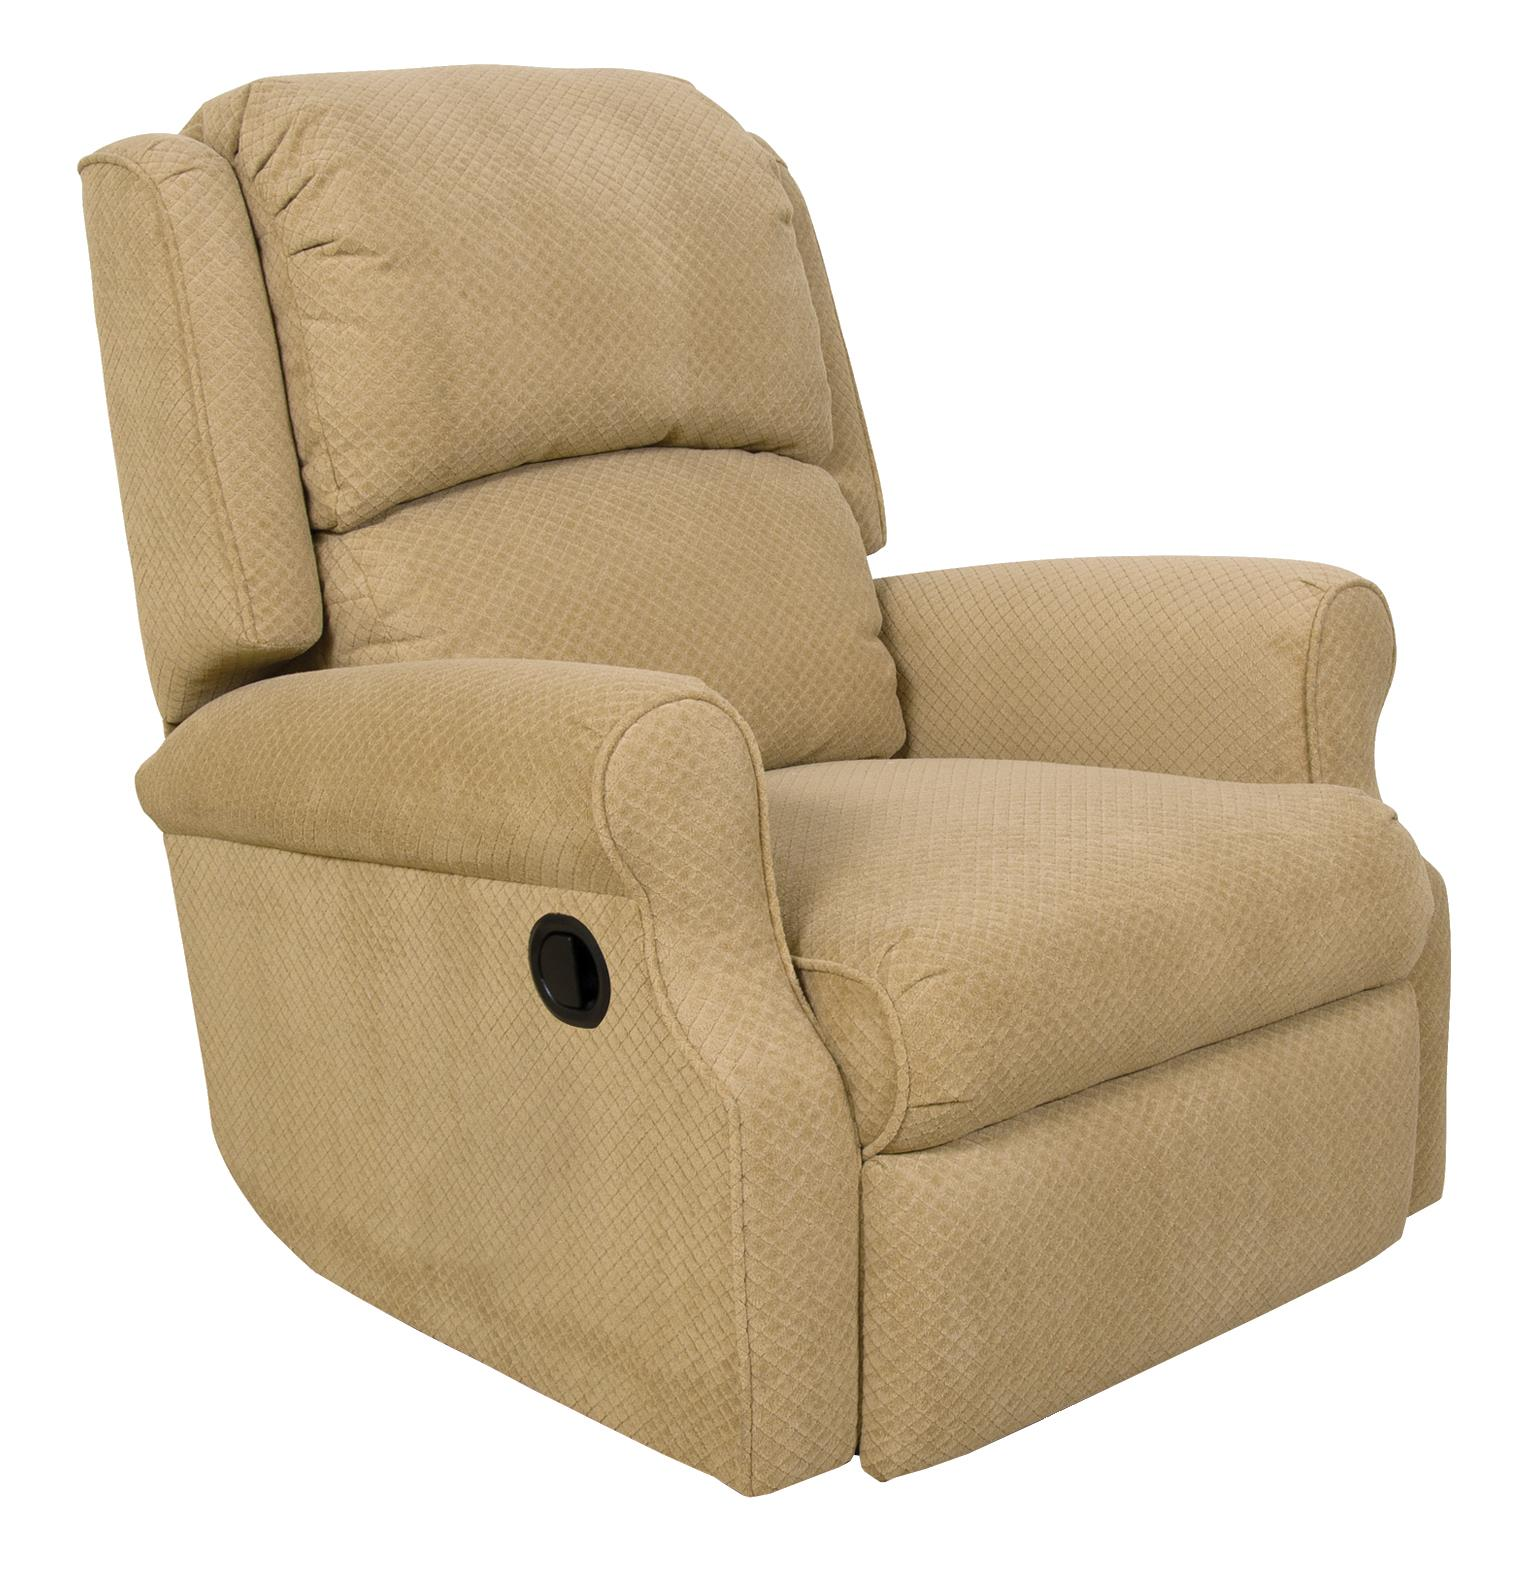 Marybeth Minimum Proximity Recliner by England at Lindy's Furniture Company